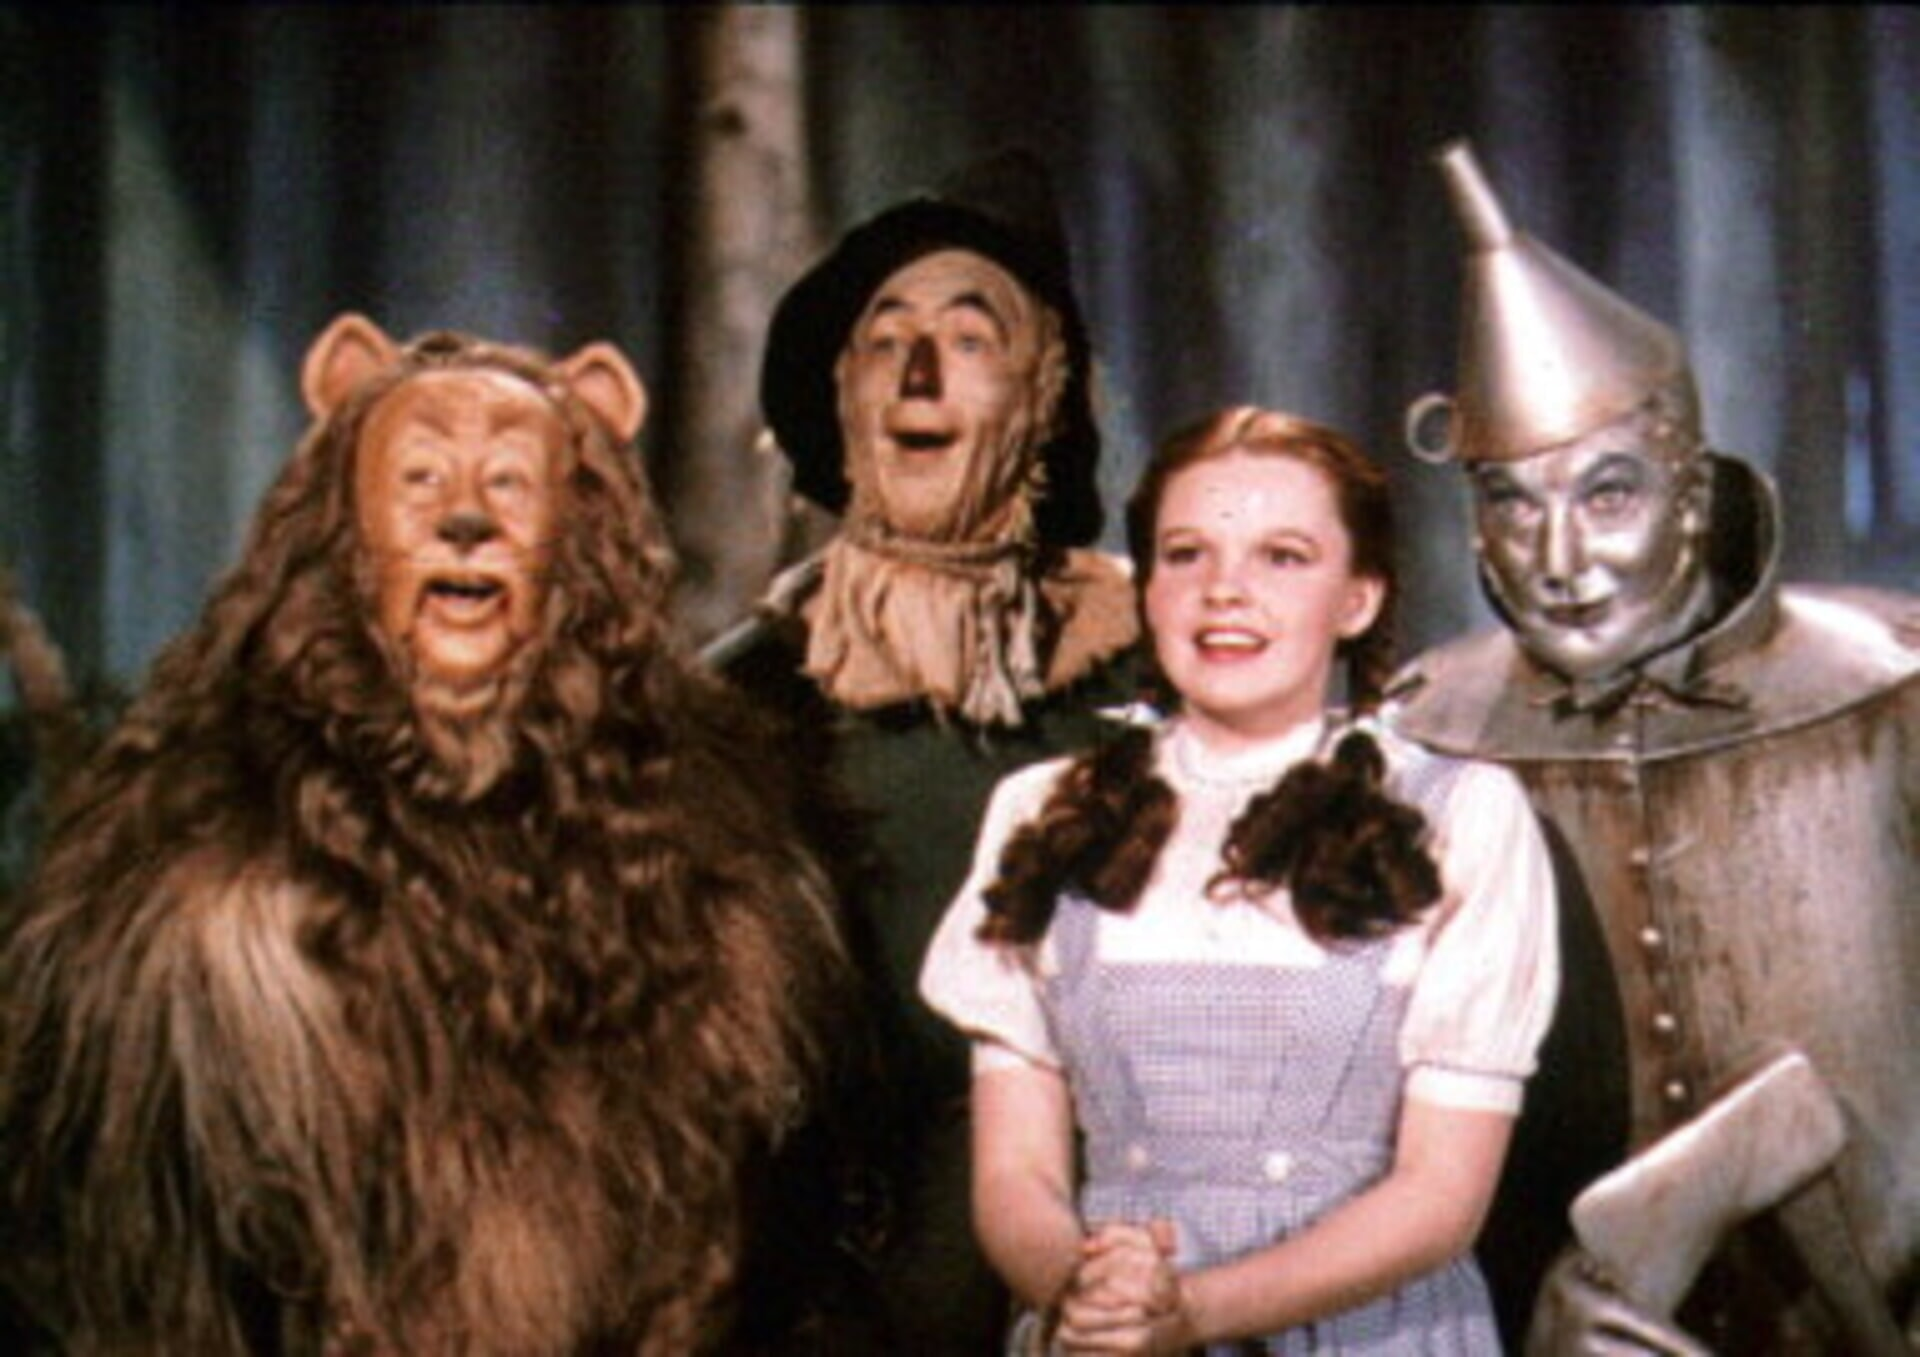 The Wizard of Oz - Image 3